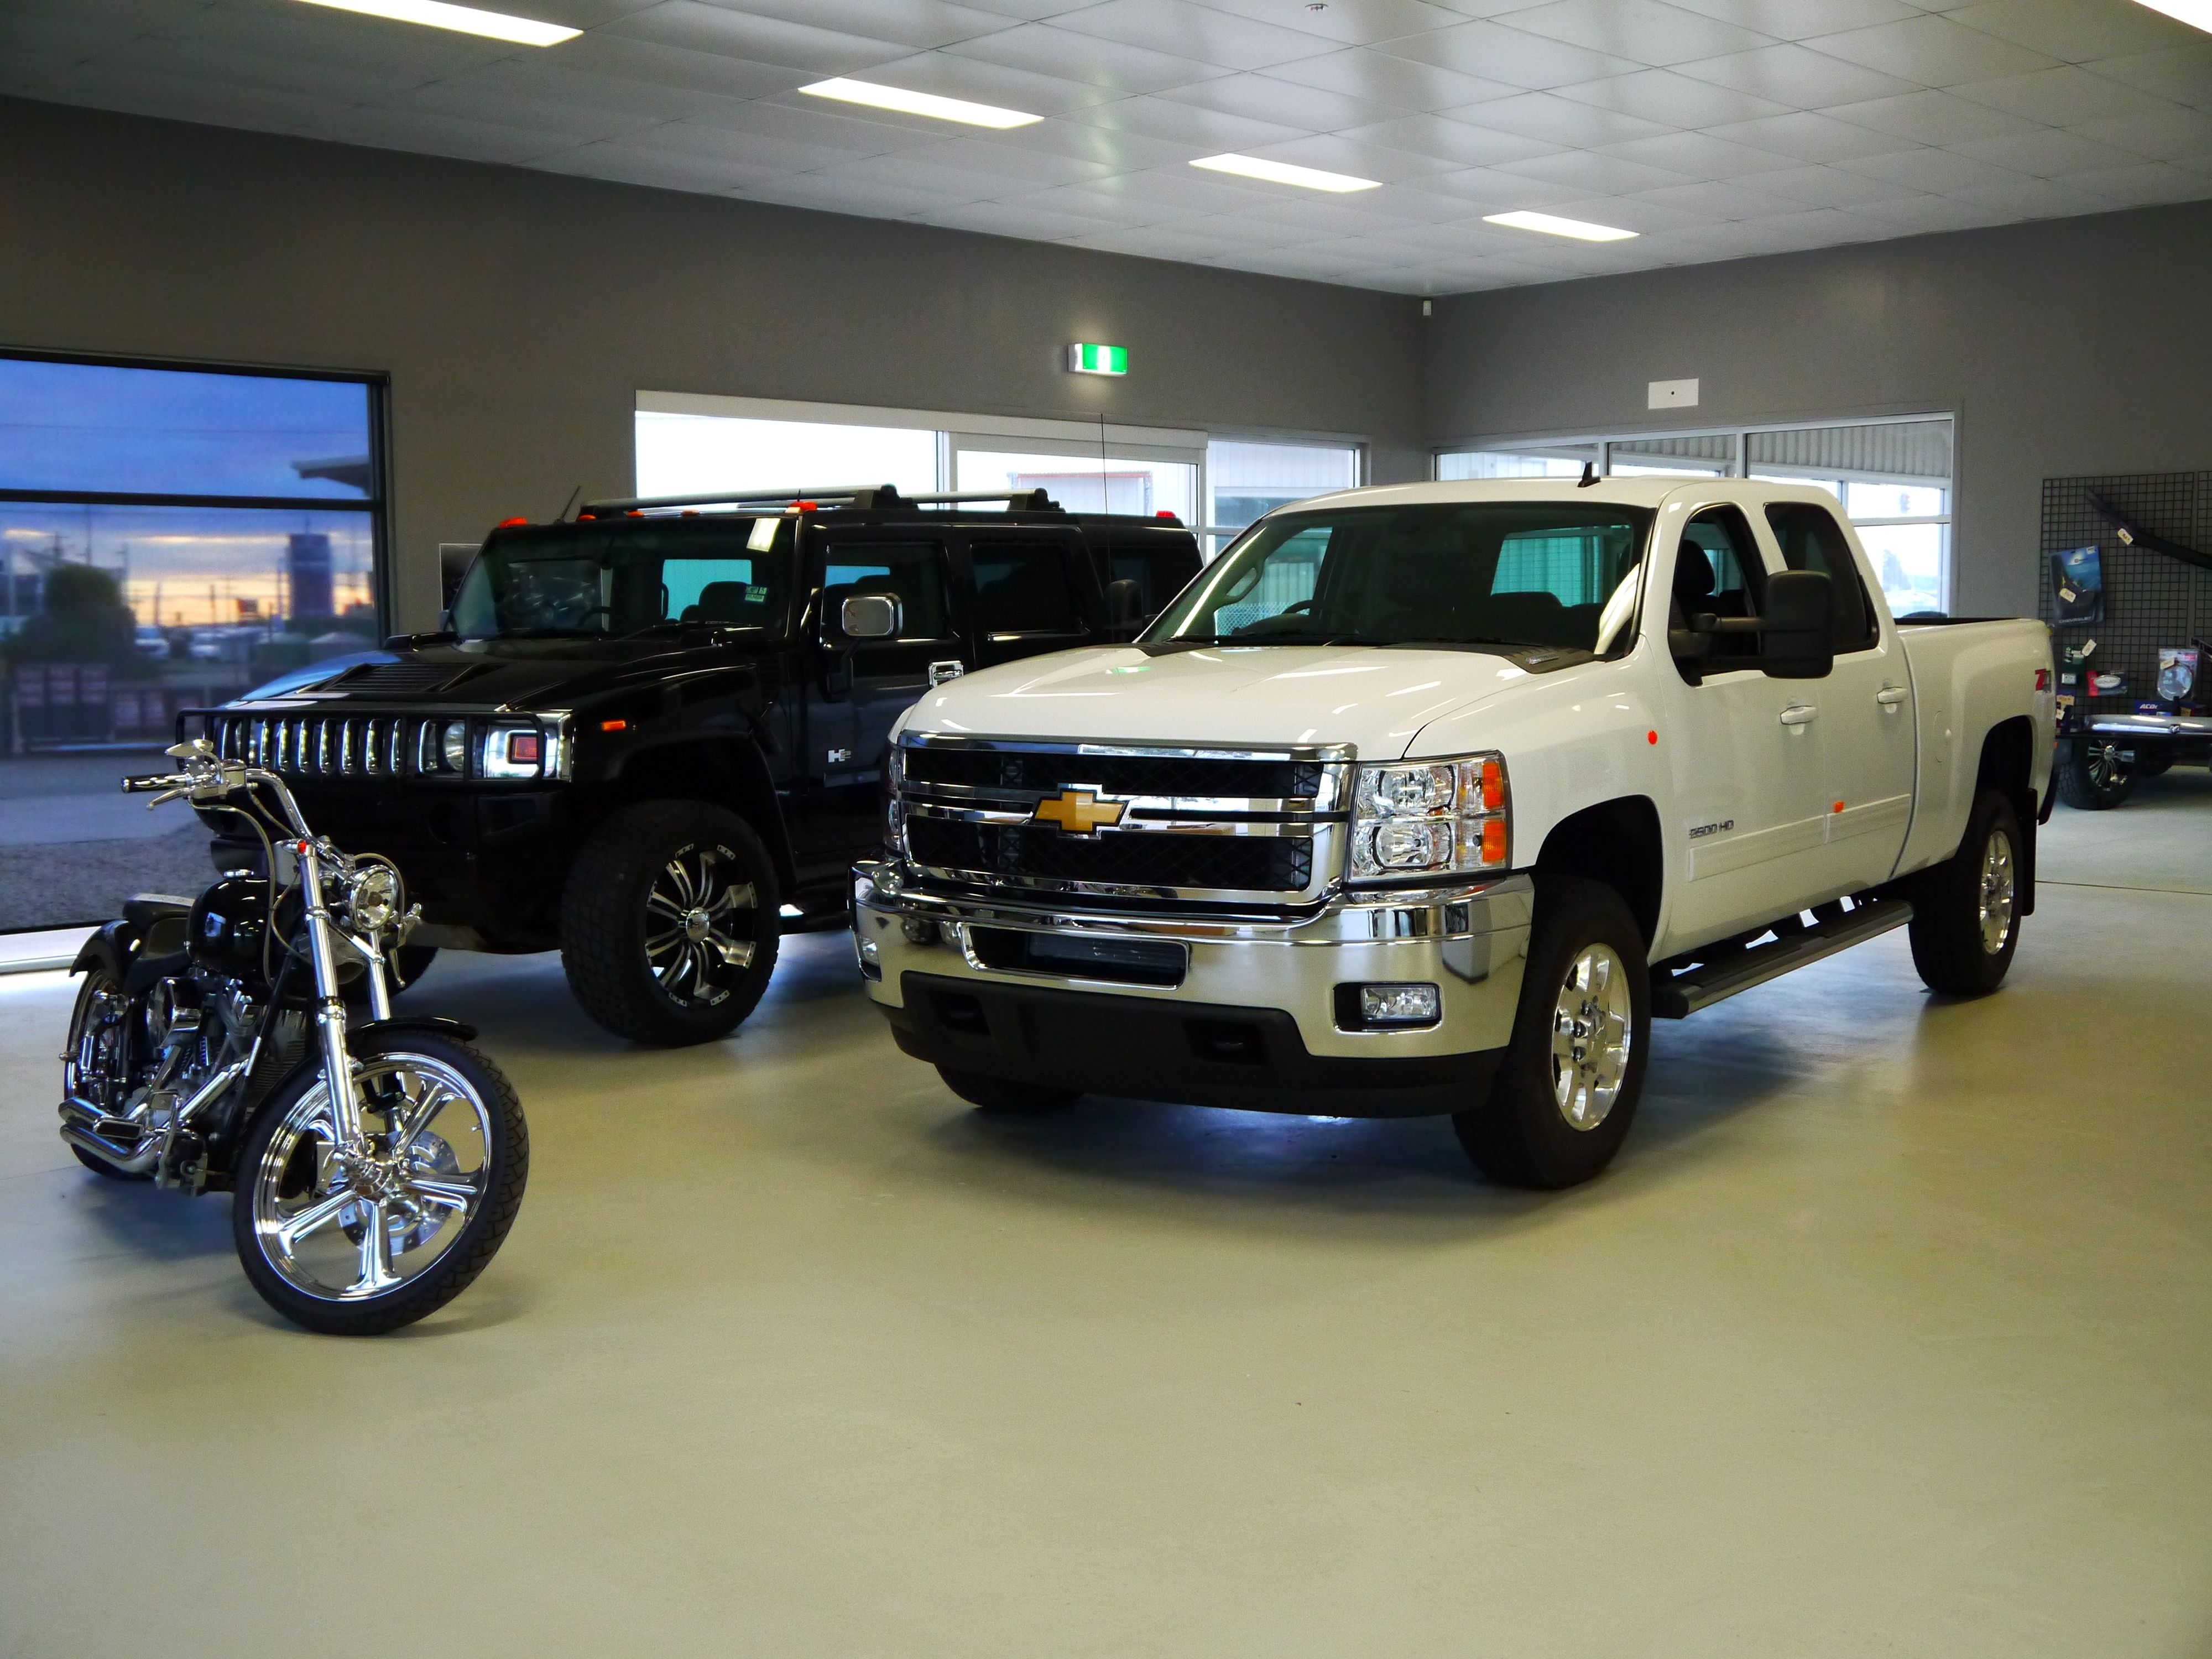 Looking for used cars in Melbourne? Look no farther